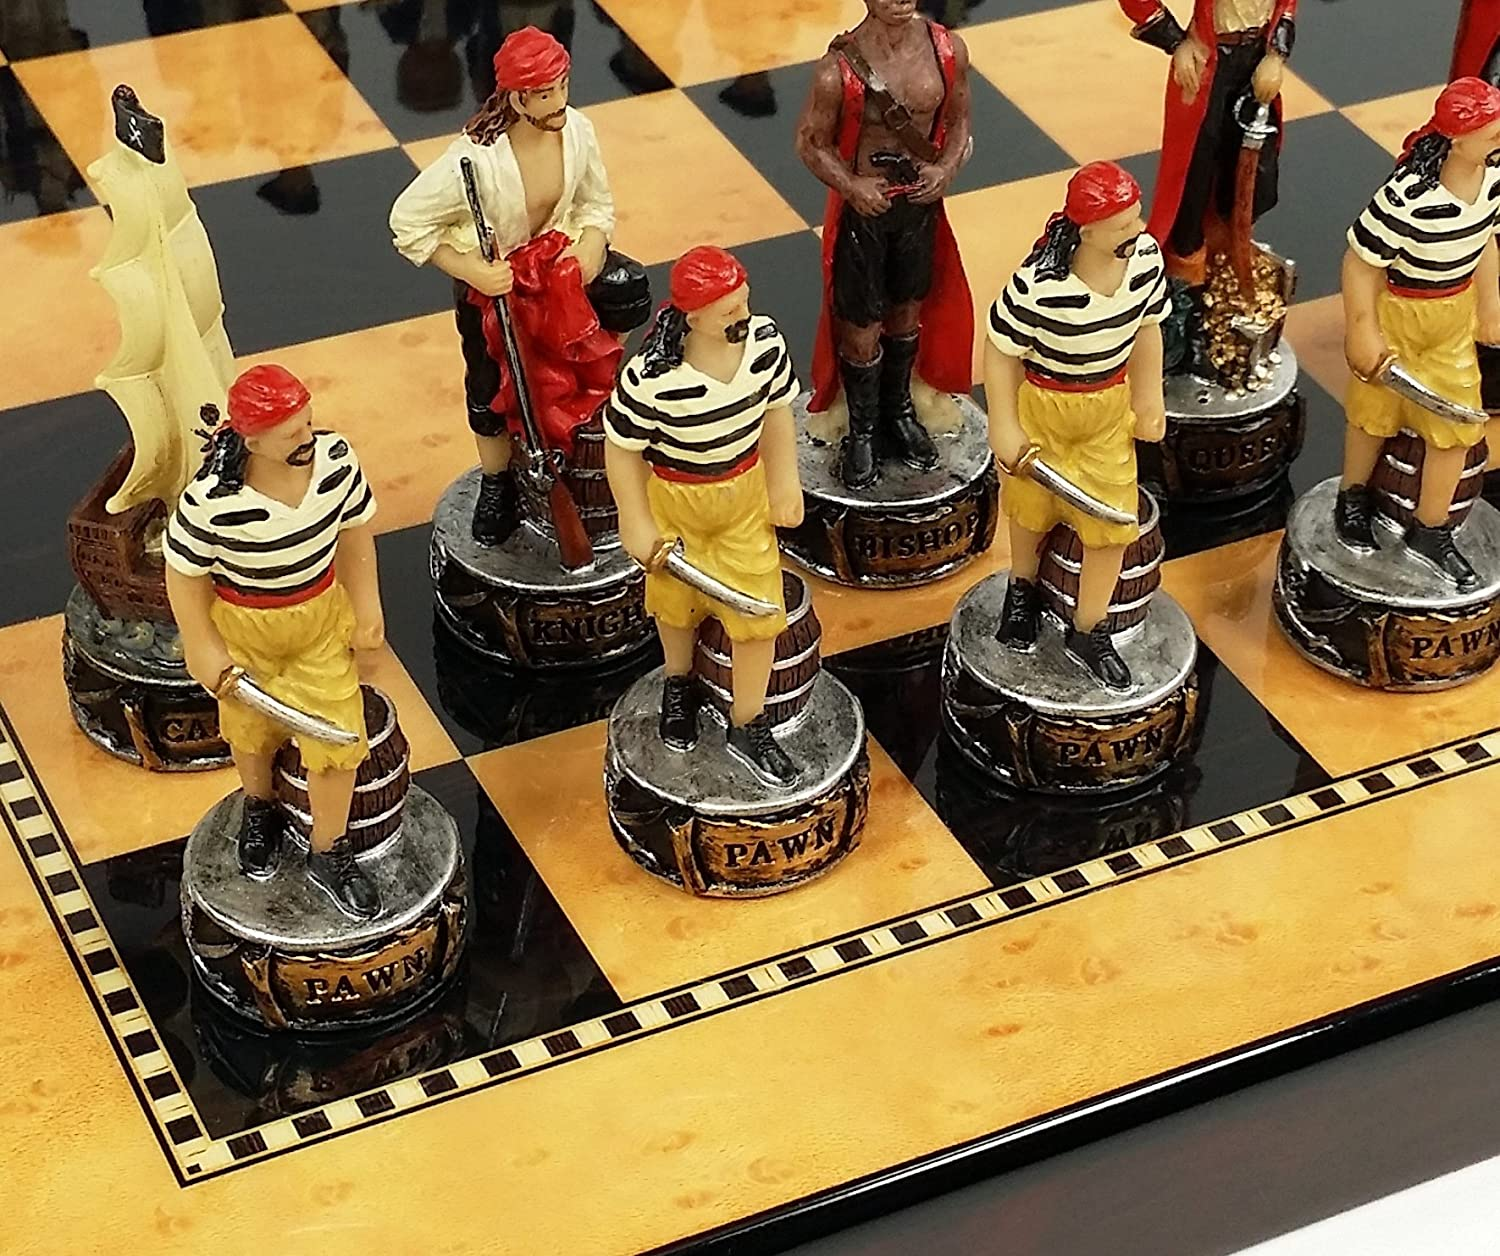 【限定セール!】 Pirates Color Maple Vs Royal Navy Pirate Chess Men Set Chess W/ 15